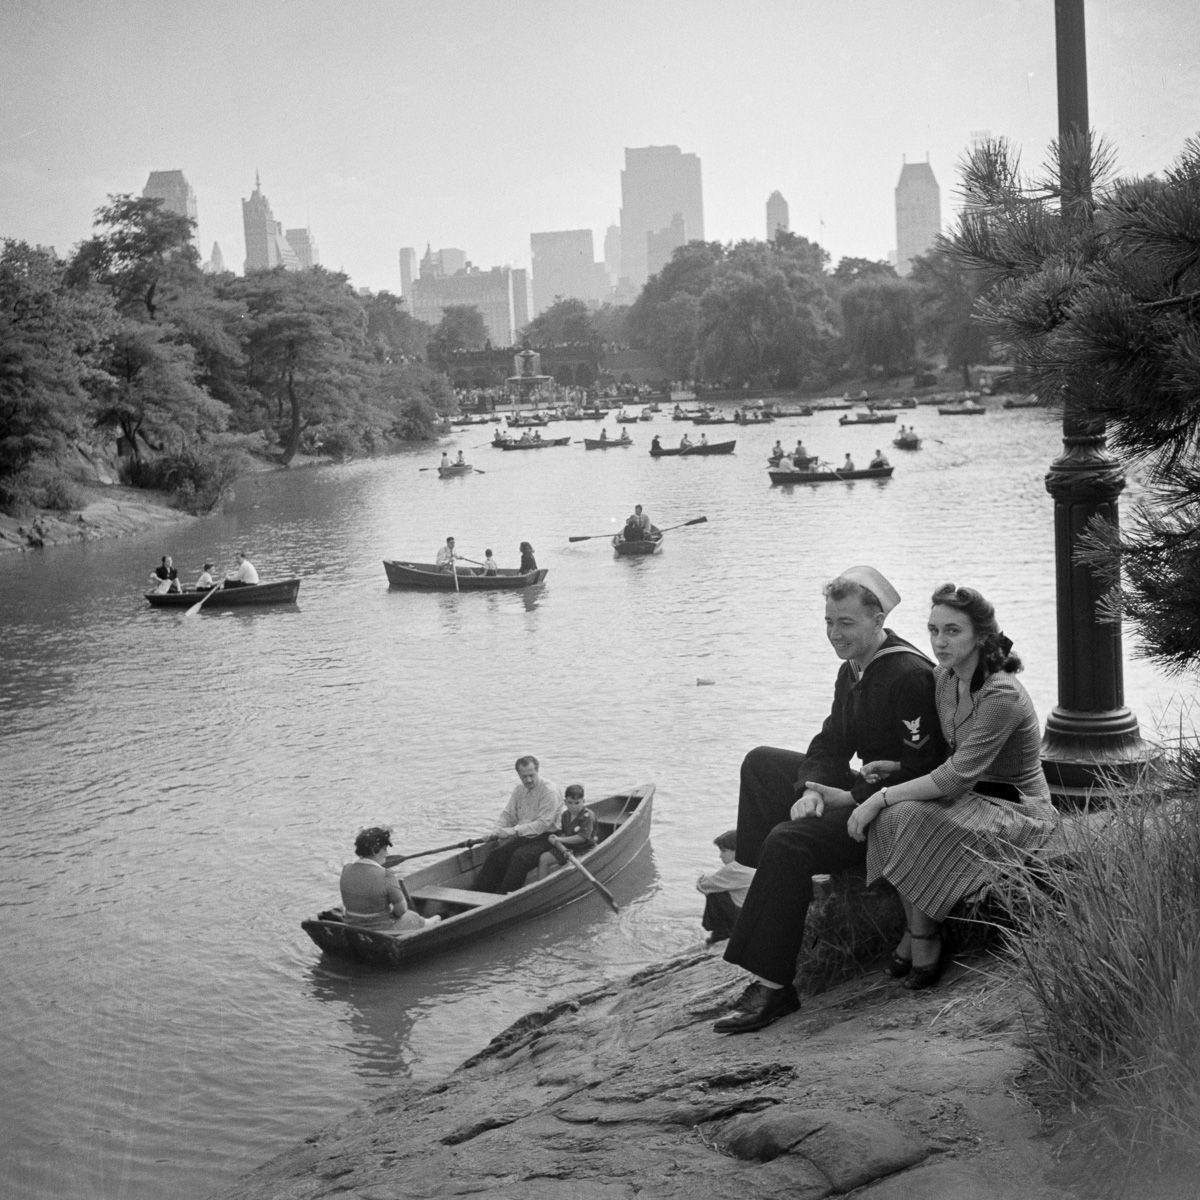 Vintage Park: Vintage Photograph Shows A Busy Central Park Lake In The